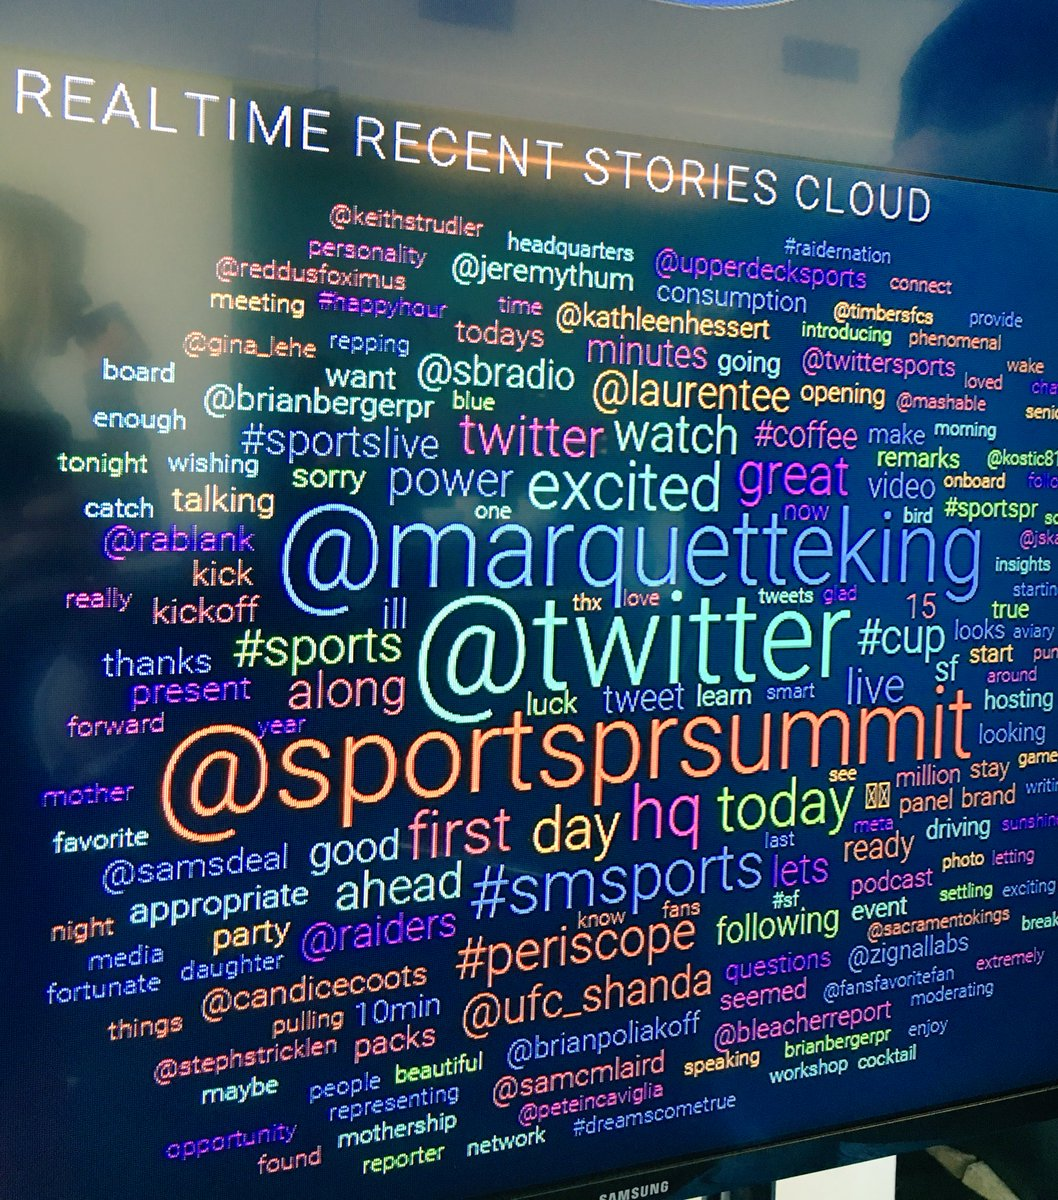 So much love for @RAIDERS punter @MarquetteKing as the opening session at #SportsPRsummit starts.